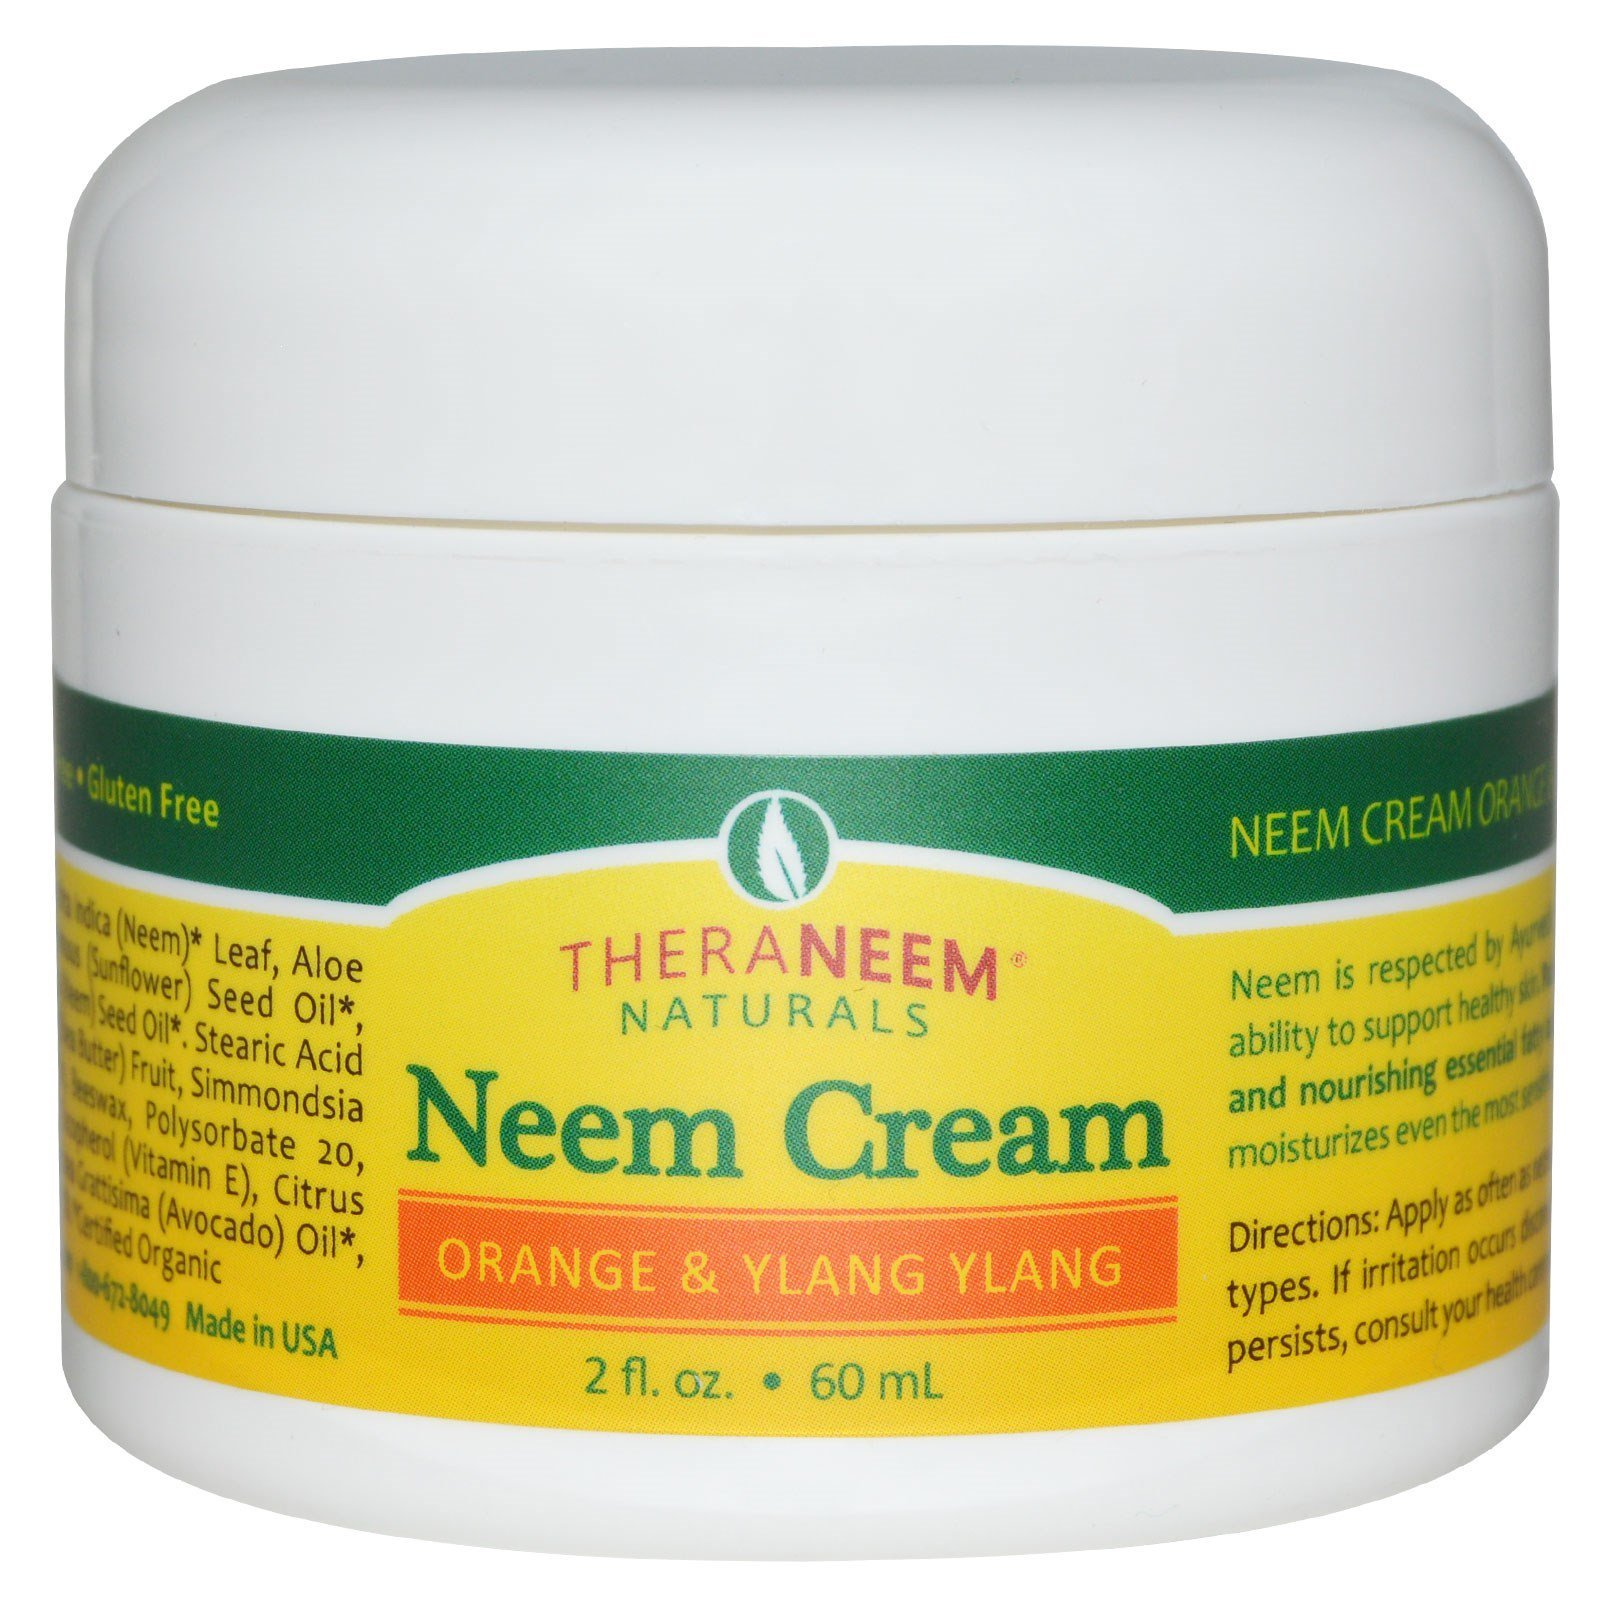 Organix South, TheraNeem, Neem Cream, Orange & Ylang Ylang, 2 fl oz (60 ml)